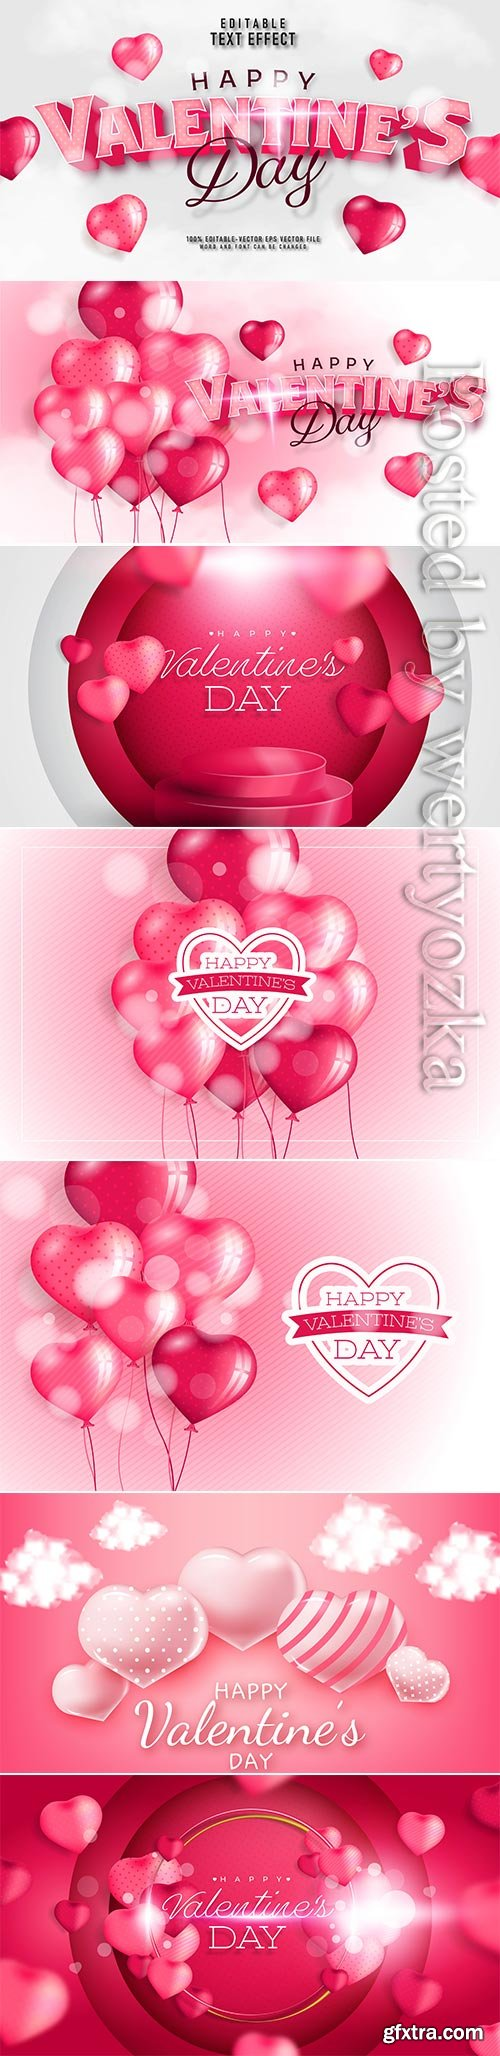 Valentine's day text effect in vector